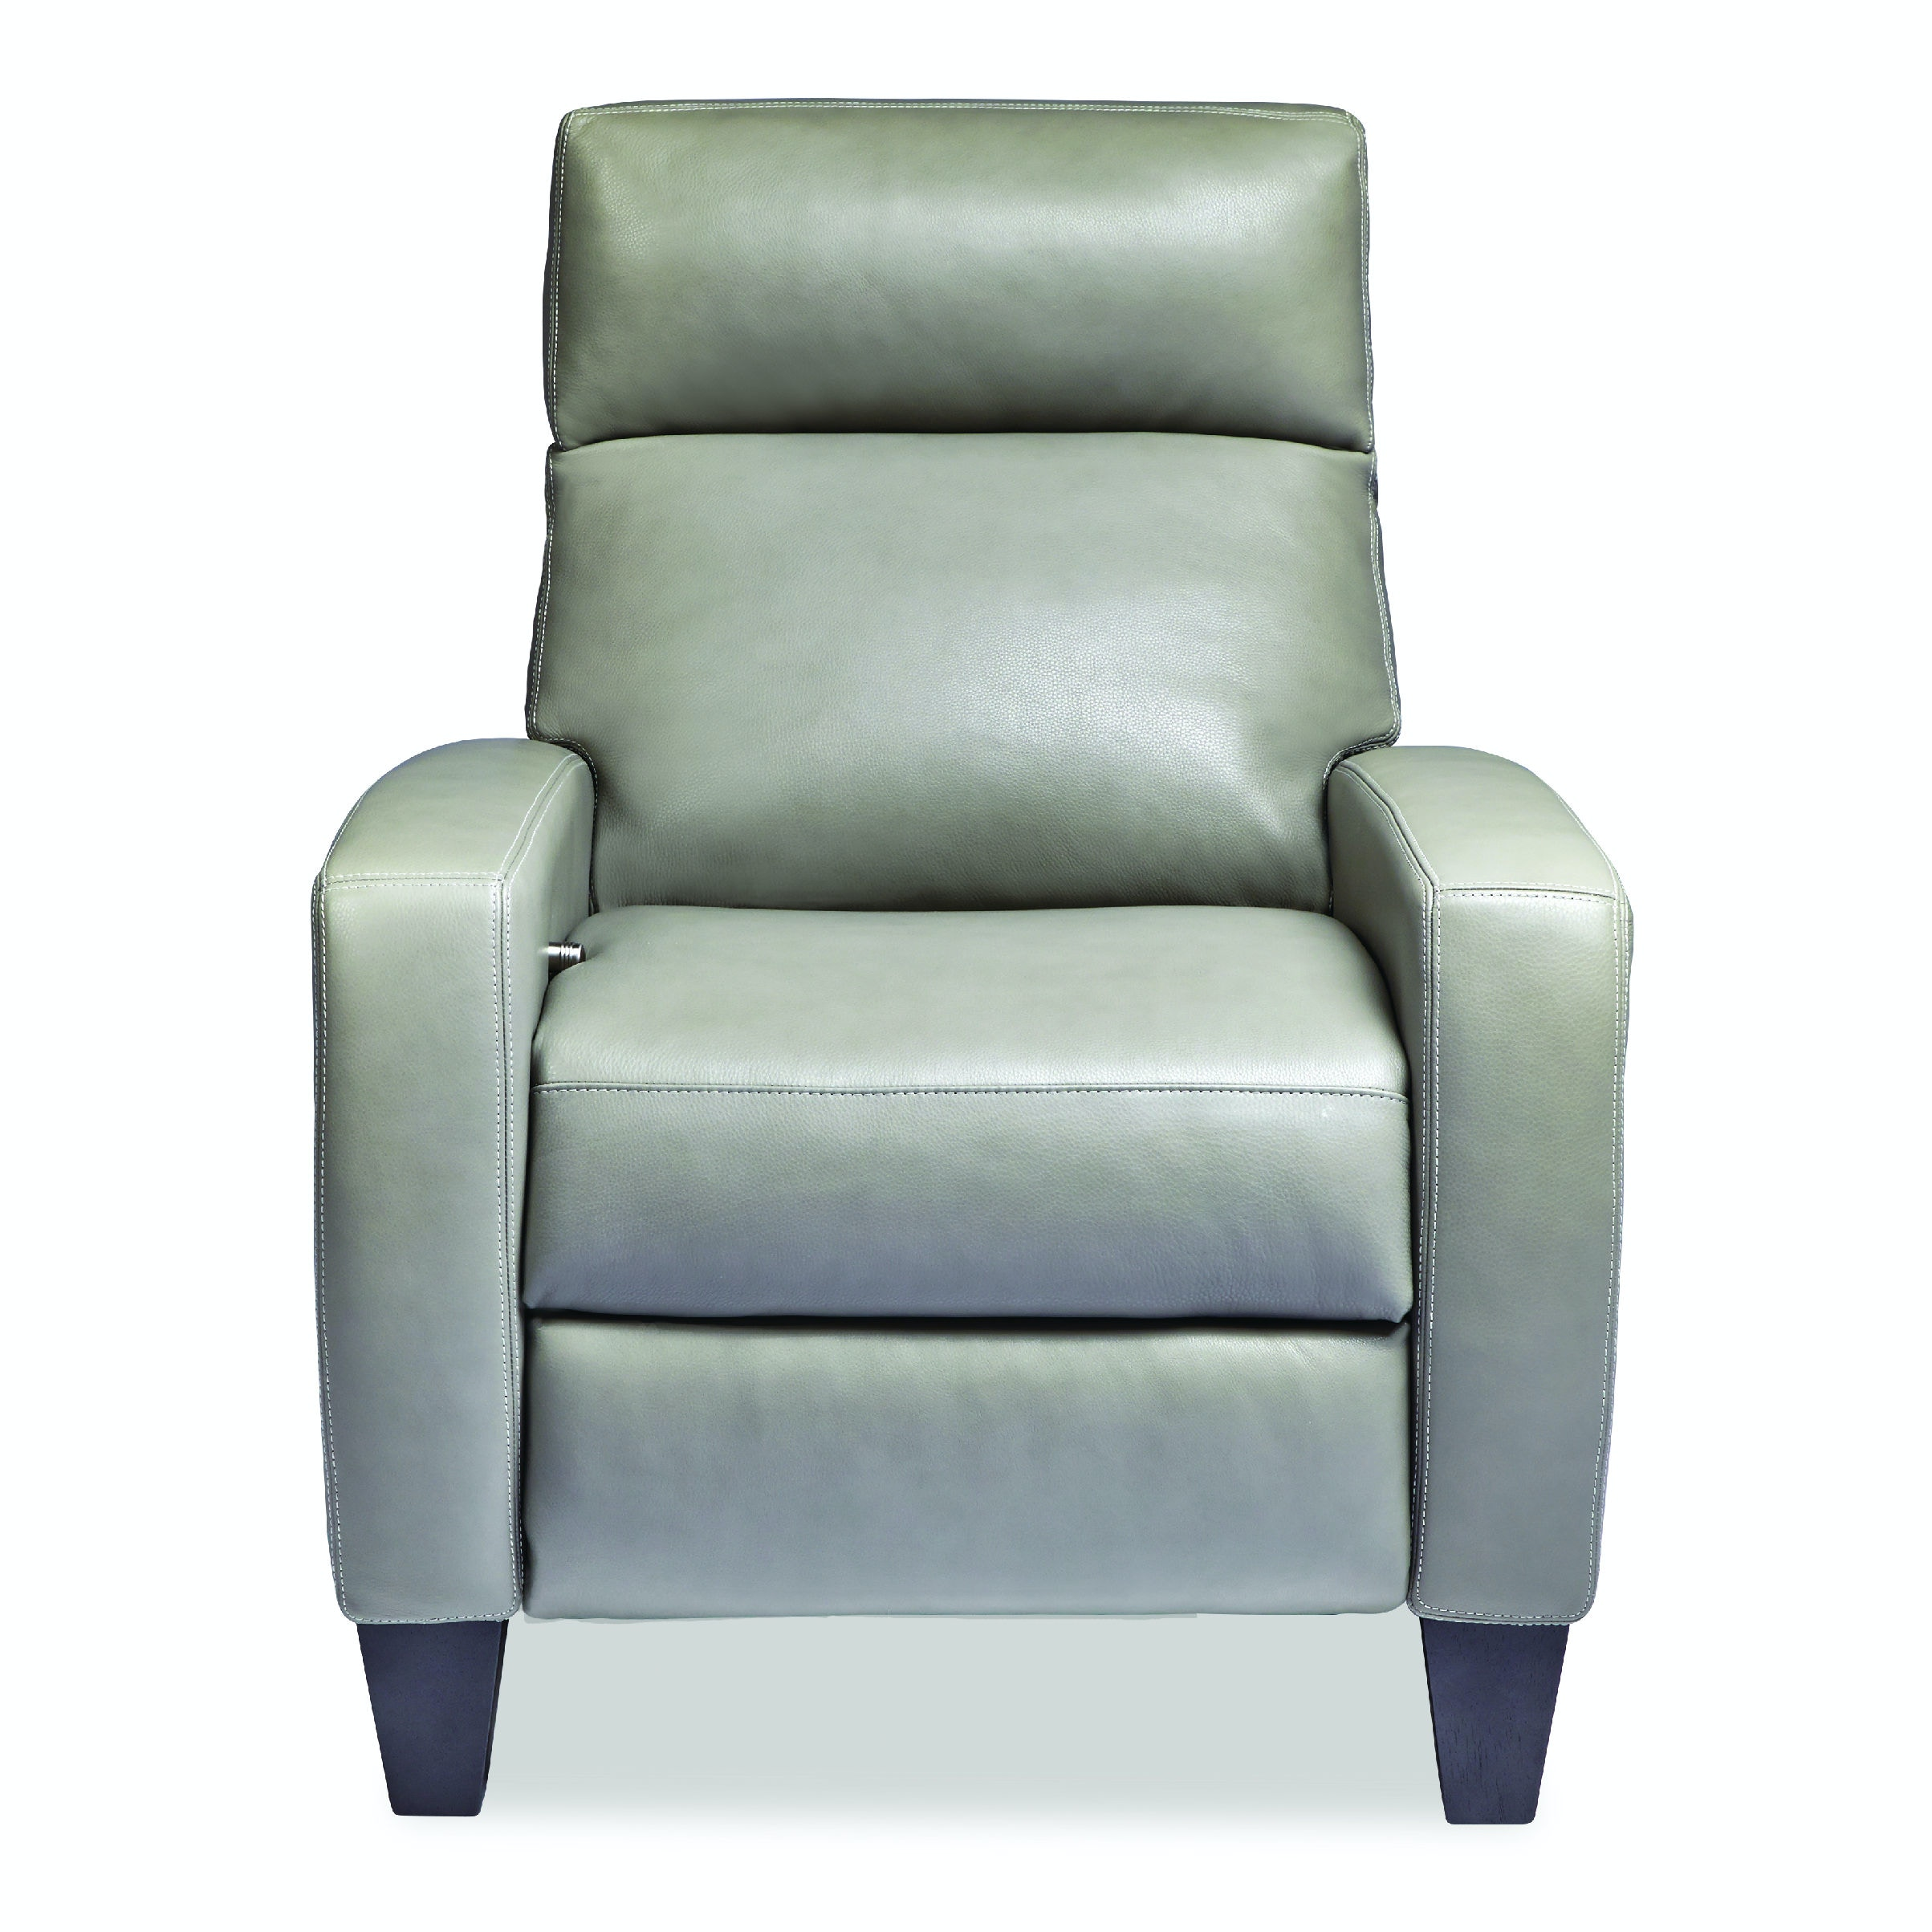 american leather chairs and recliners childrens bean bag living room dexter 7 recliner dex rv7 st